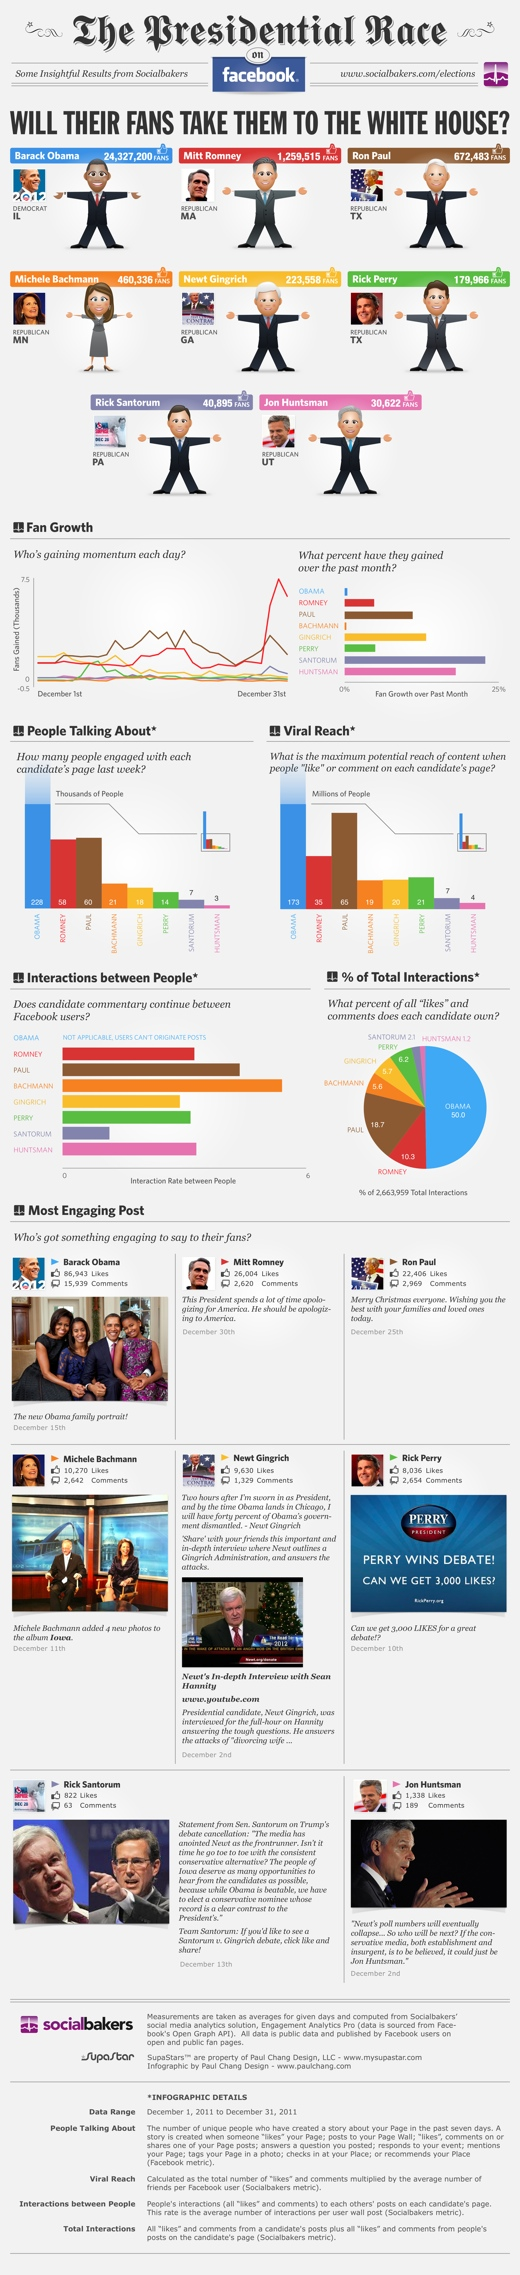 socialbakers infographic Dec01 Dec31 On Facebook, Ron Paul is the most viral US presidential candidate [Infographic]